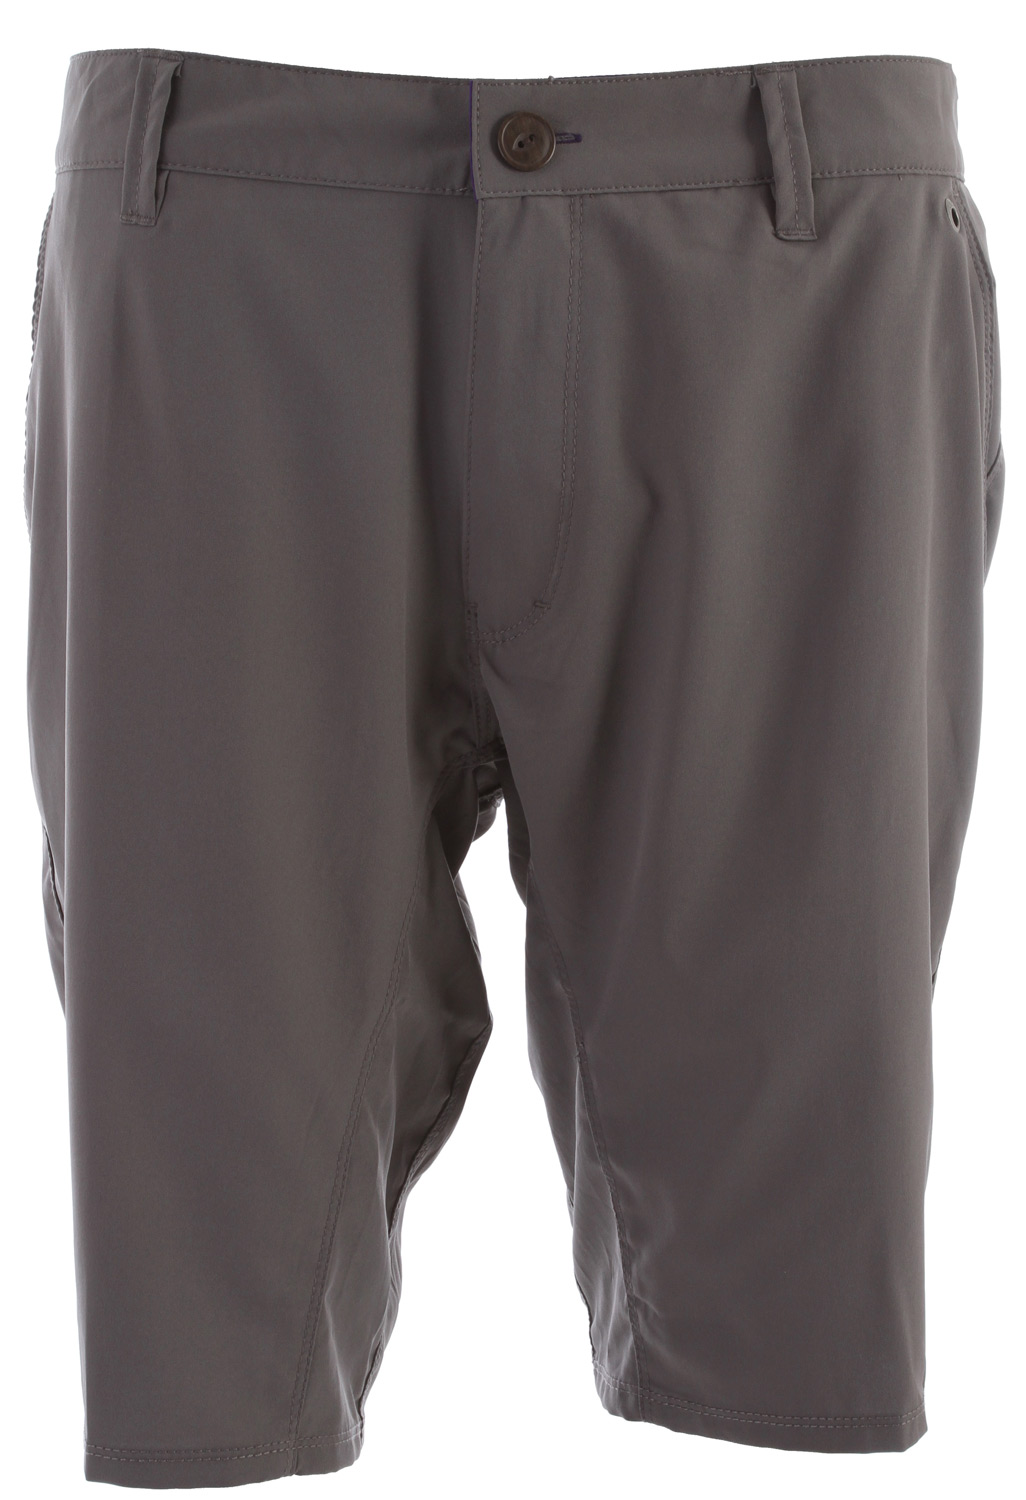 "Surf Key Features of the Reef Warm Water II Shorts: Recycled mechanical stretch fabric 50% recycled polyester ""land 2 sea"" surfable walkshort in chino silhouette mesh pocketbags new slim fit 20"" outseam - $37.95"